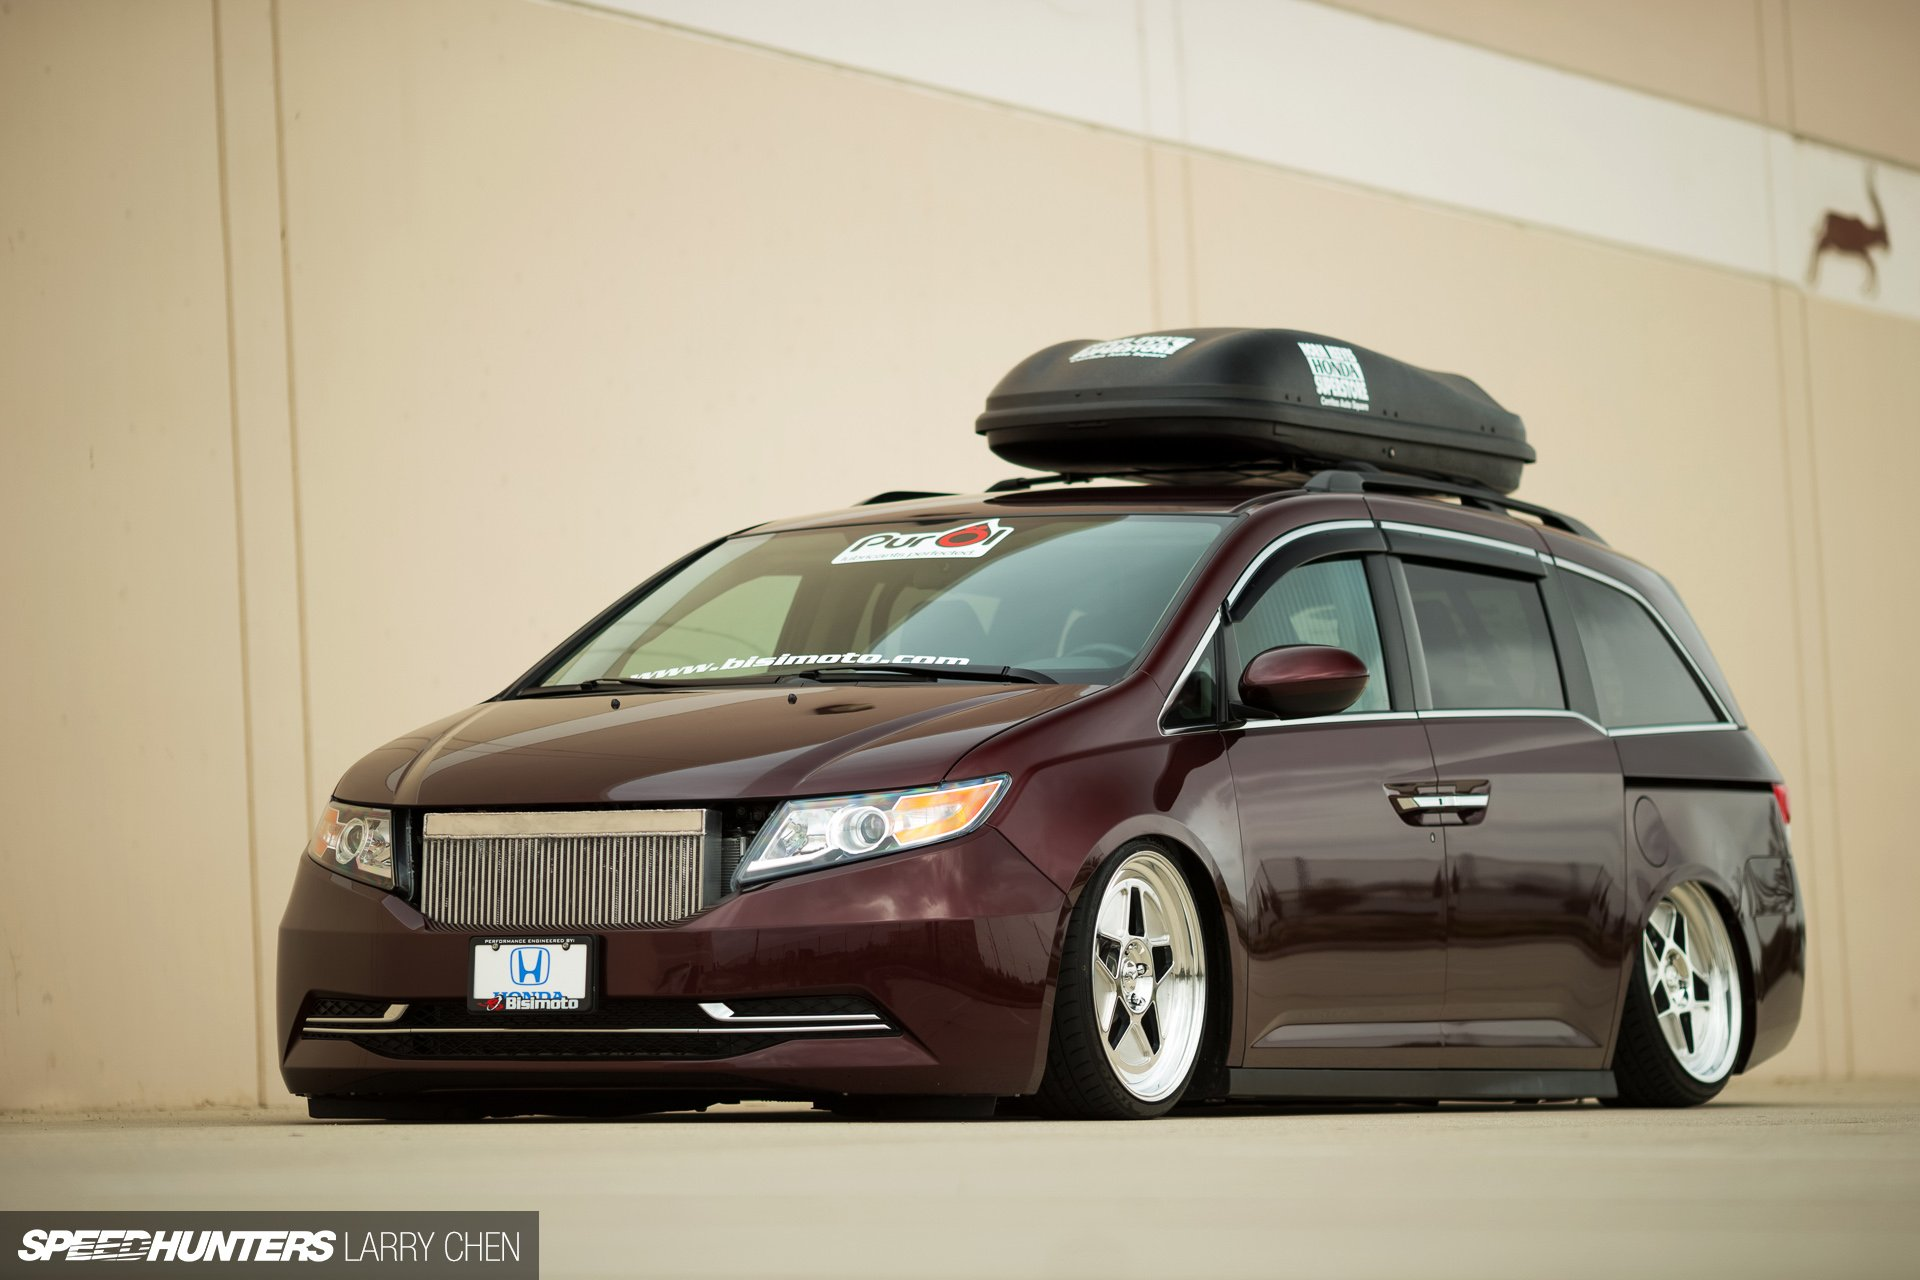 Honda odyssey minivan van hot rod rods tuning lowrider for 1000hp honda odyssey